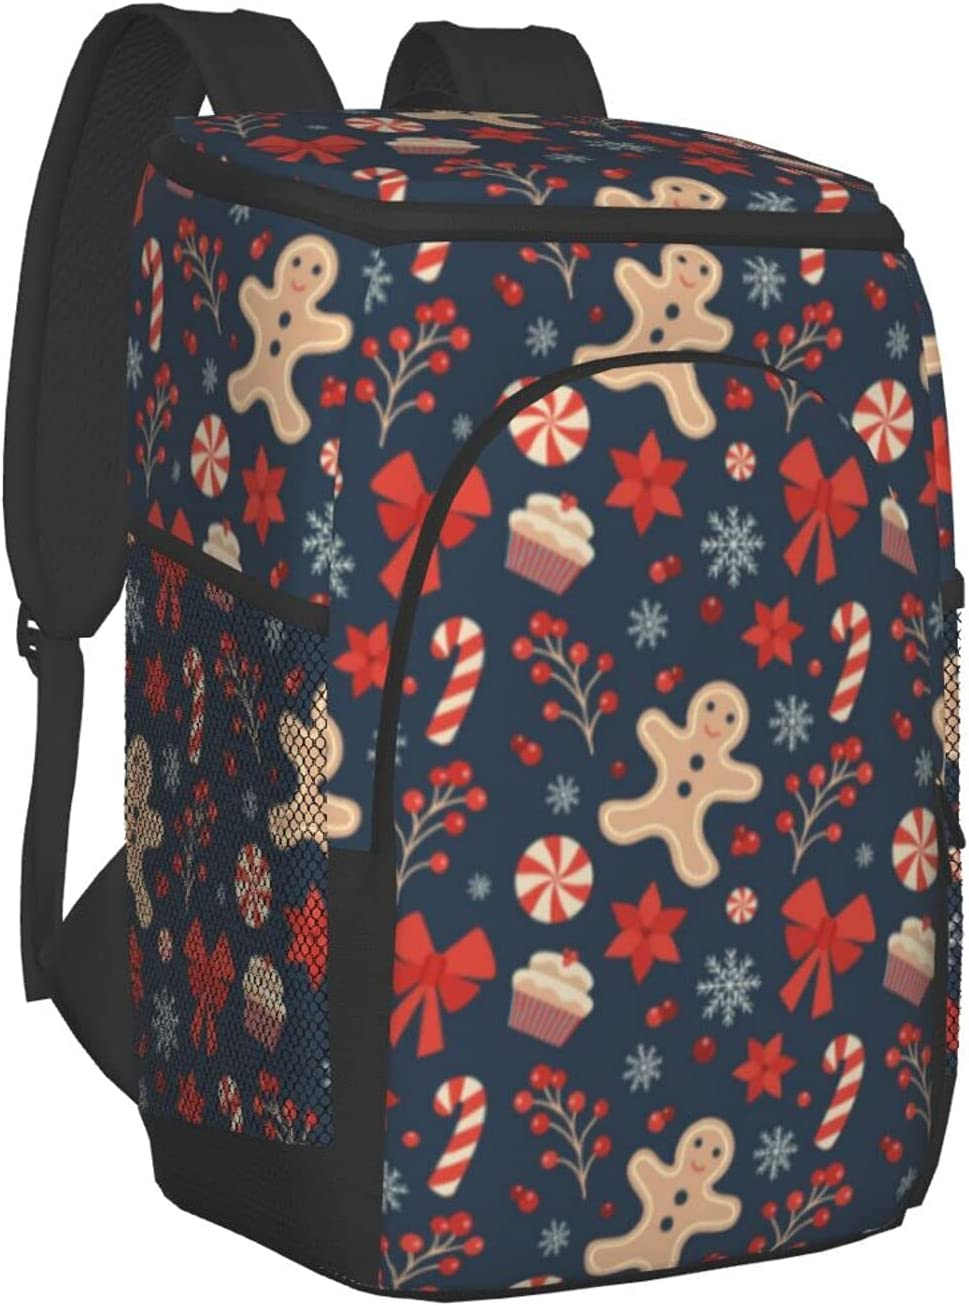 Christmas Sweet Chocolate Gingerbread Spring new work one after another SEAL limited product Backp Man Insulated Cooler